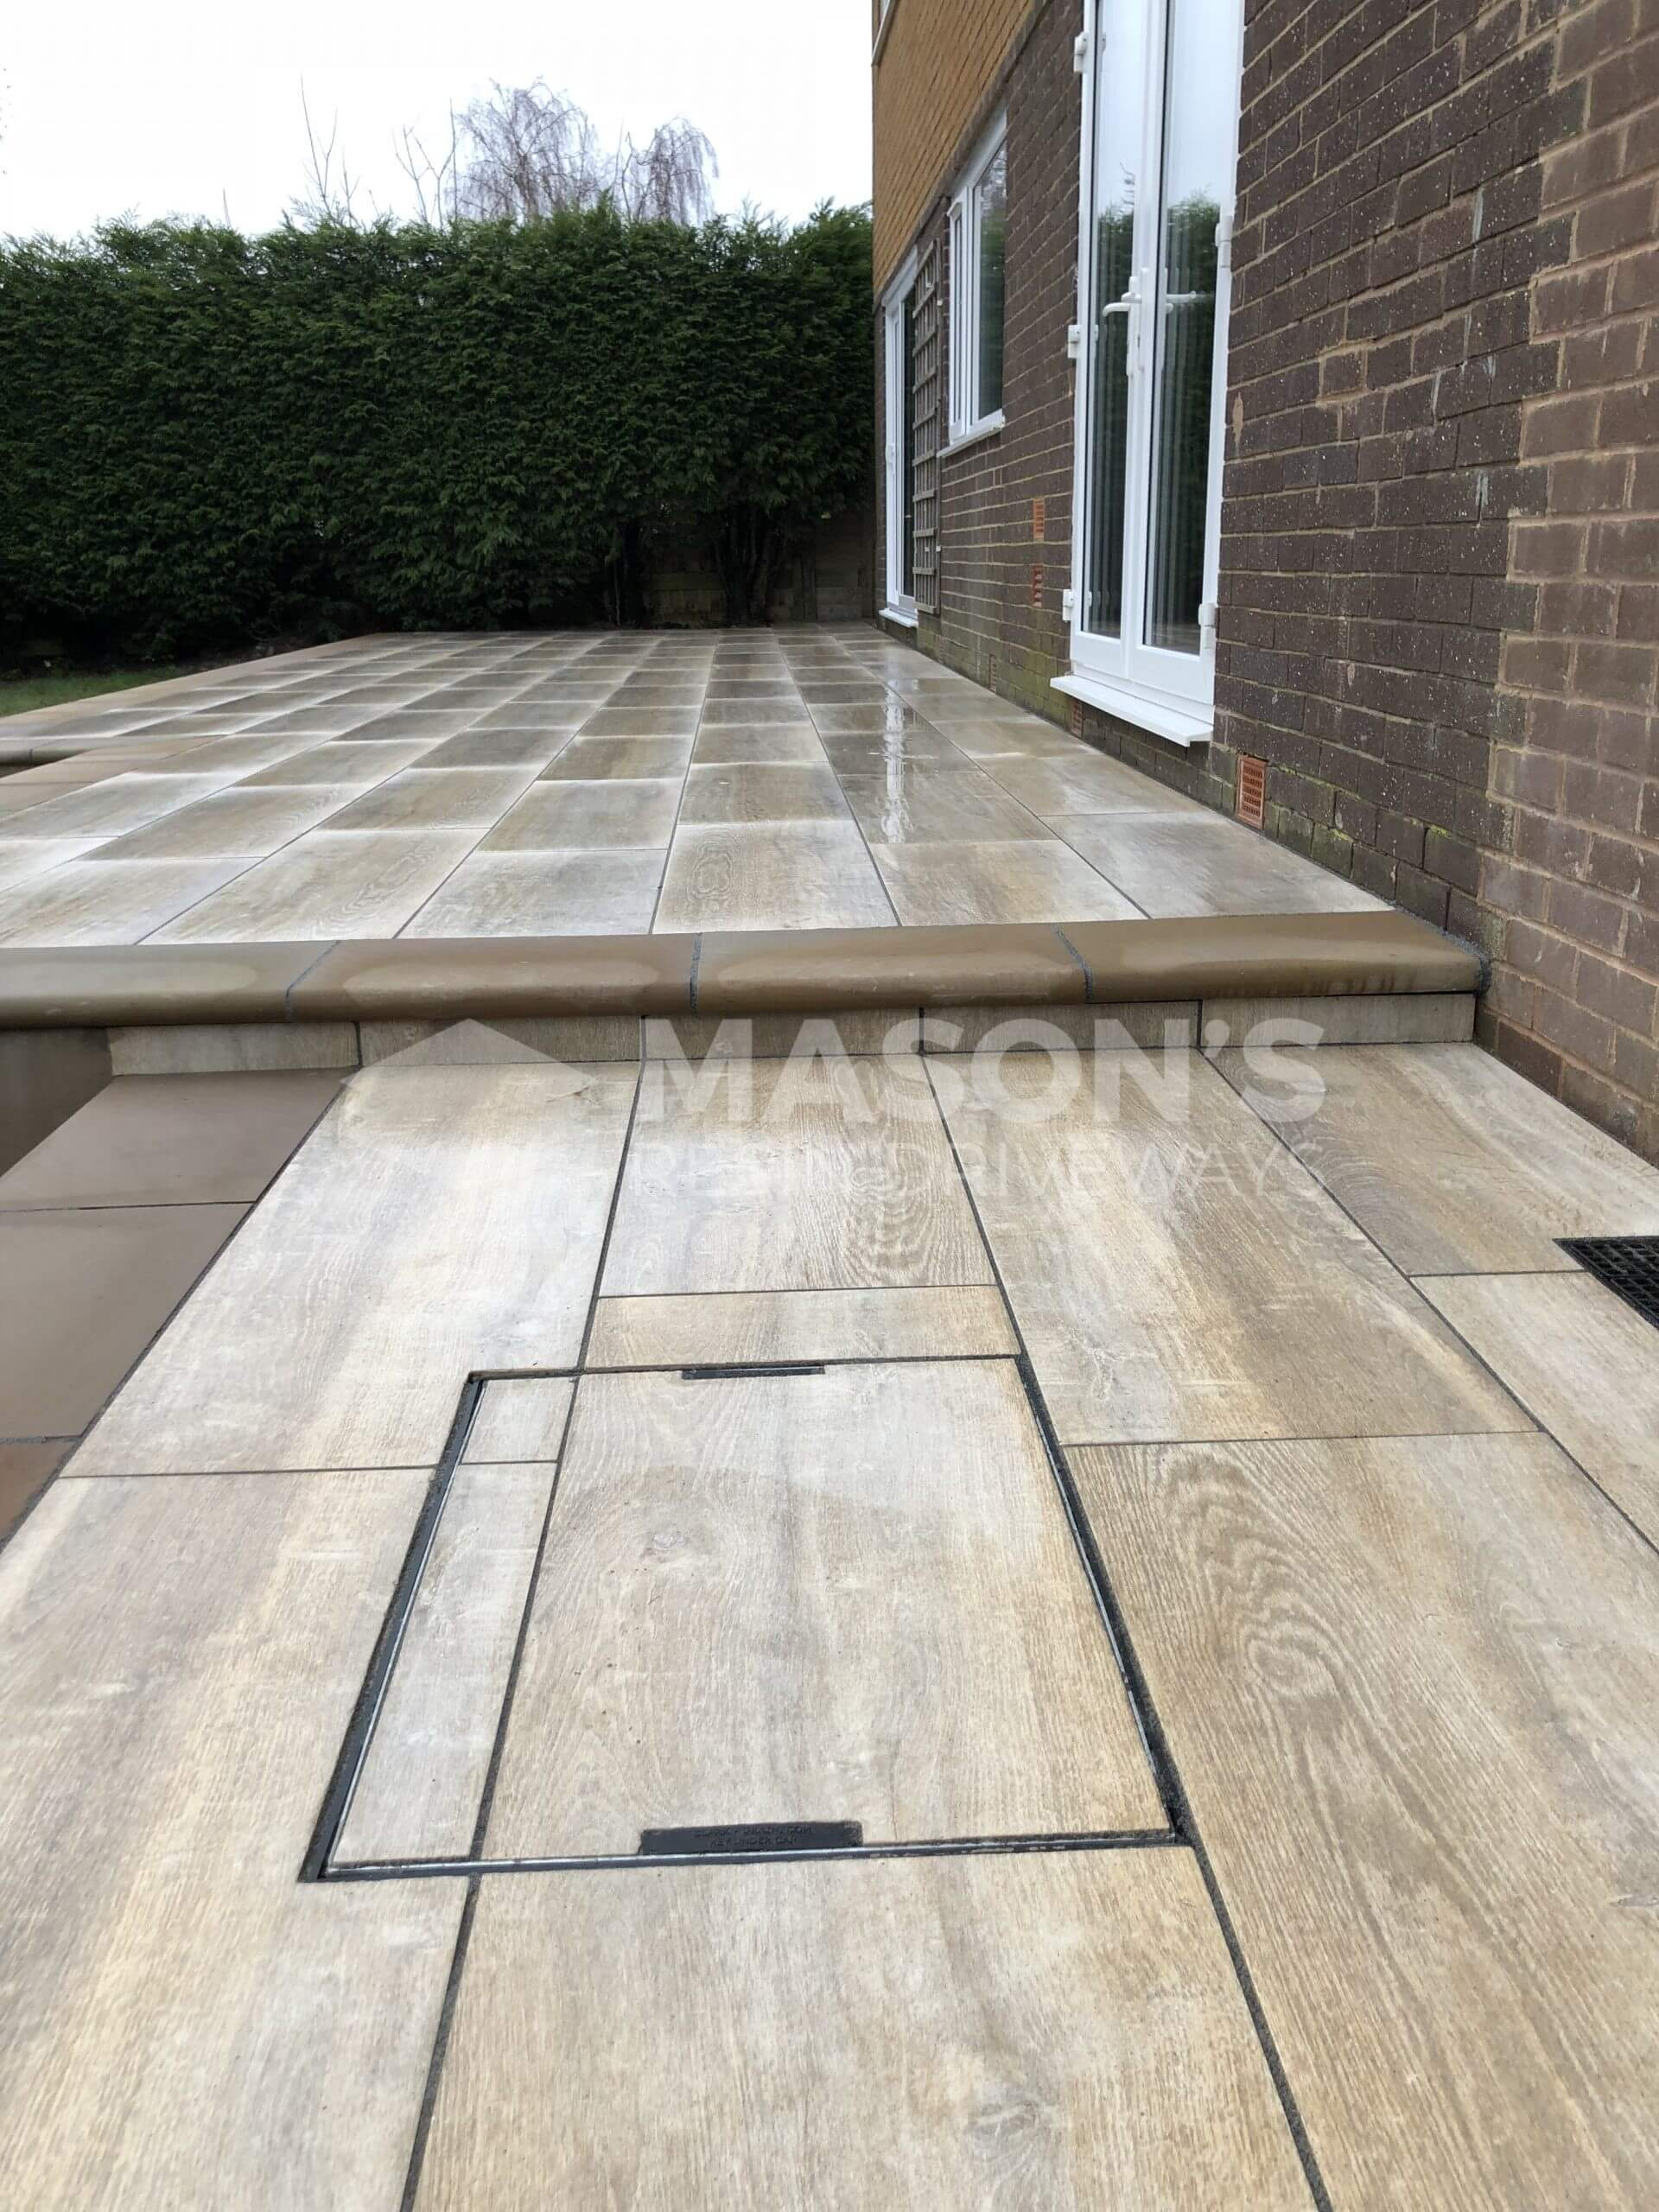 angles of finished porcelain patio wood effect in leyland, near preston